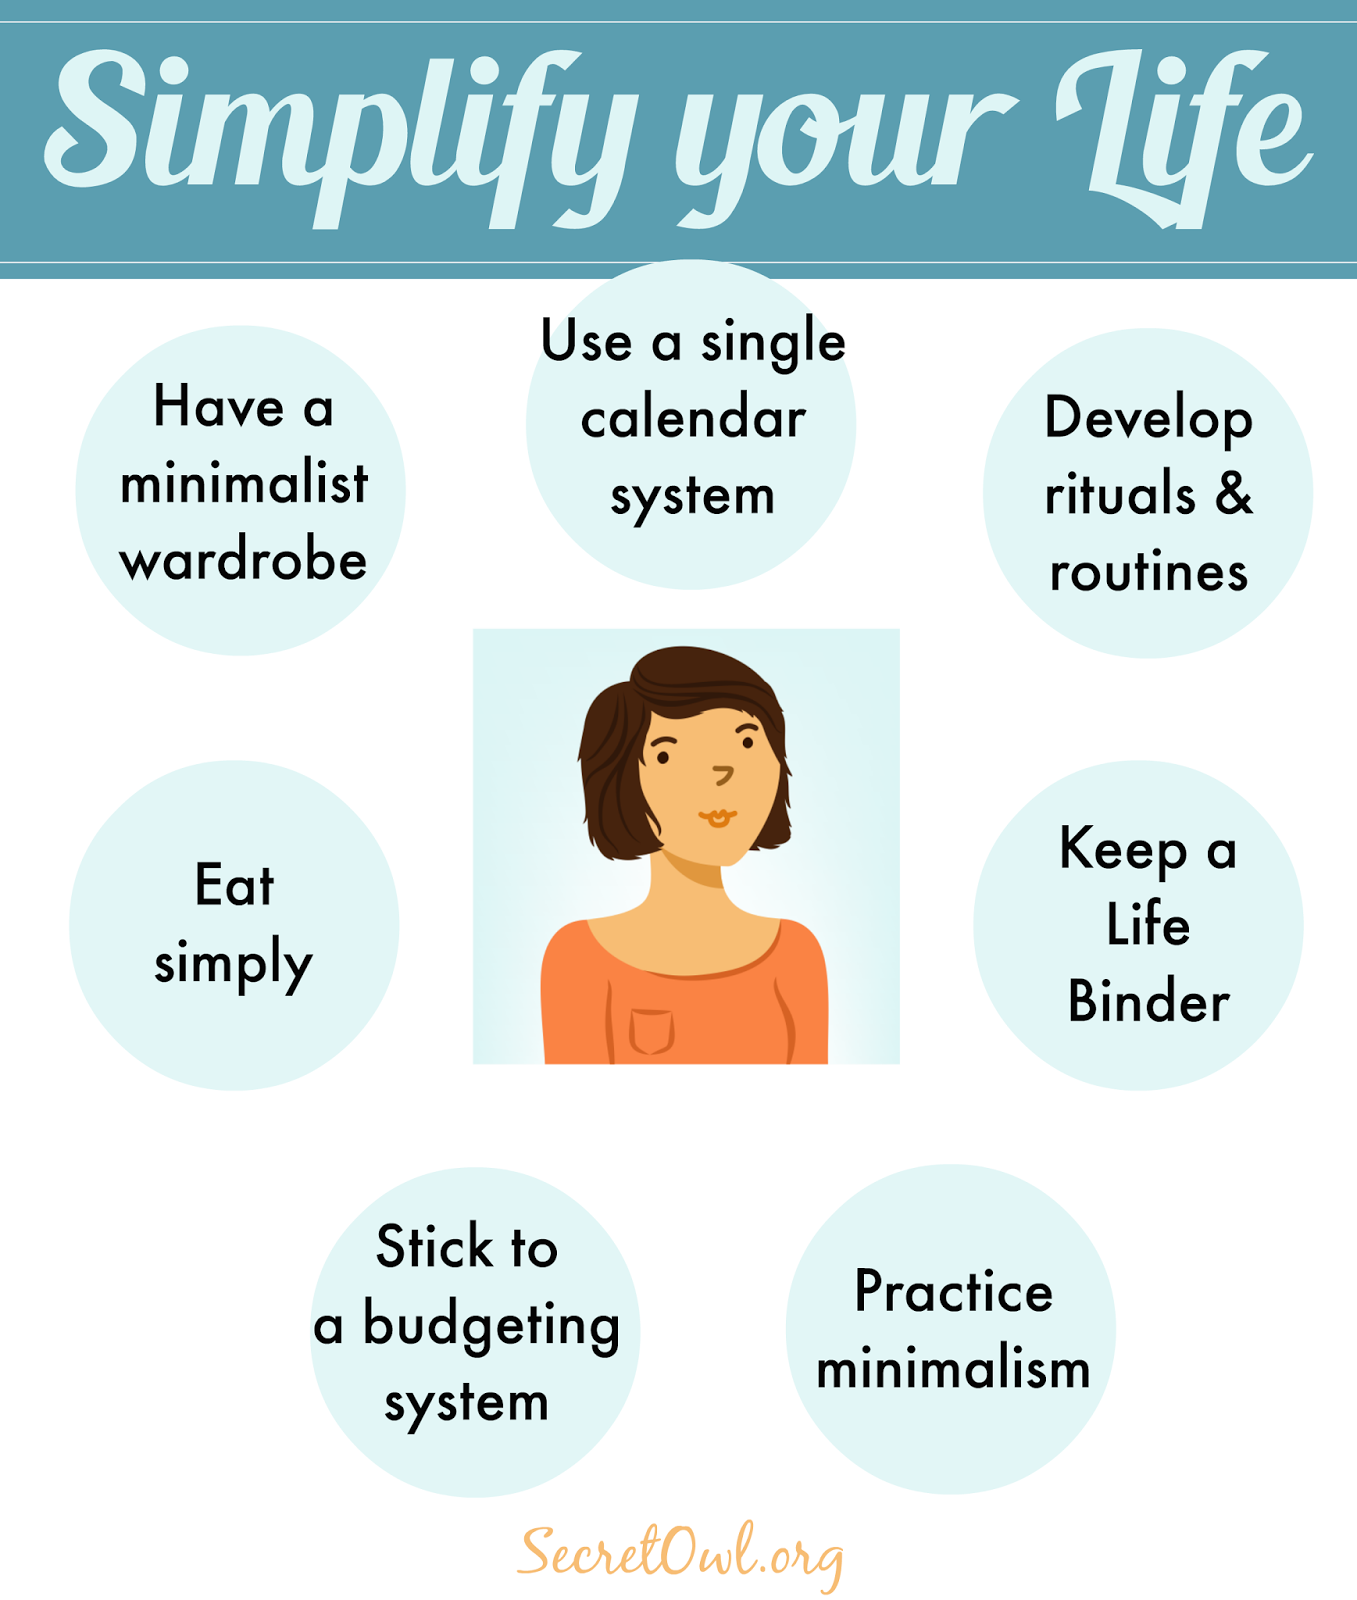 Secret owl society 7 ways to simplify your life for Simple minimalist lifestyle